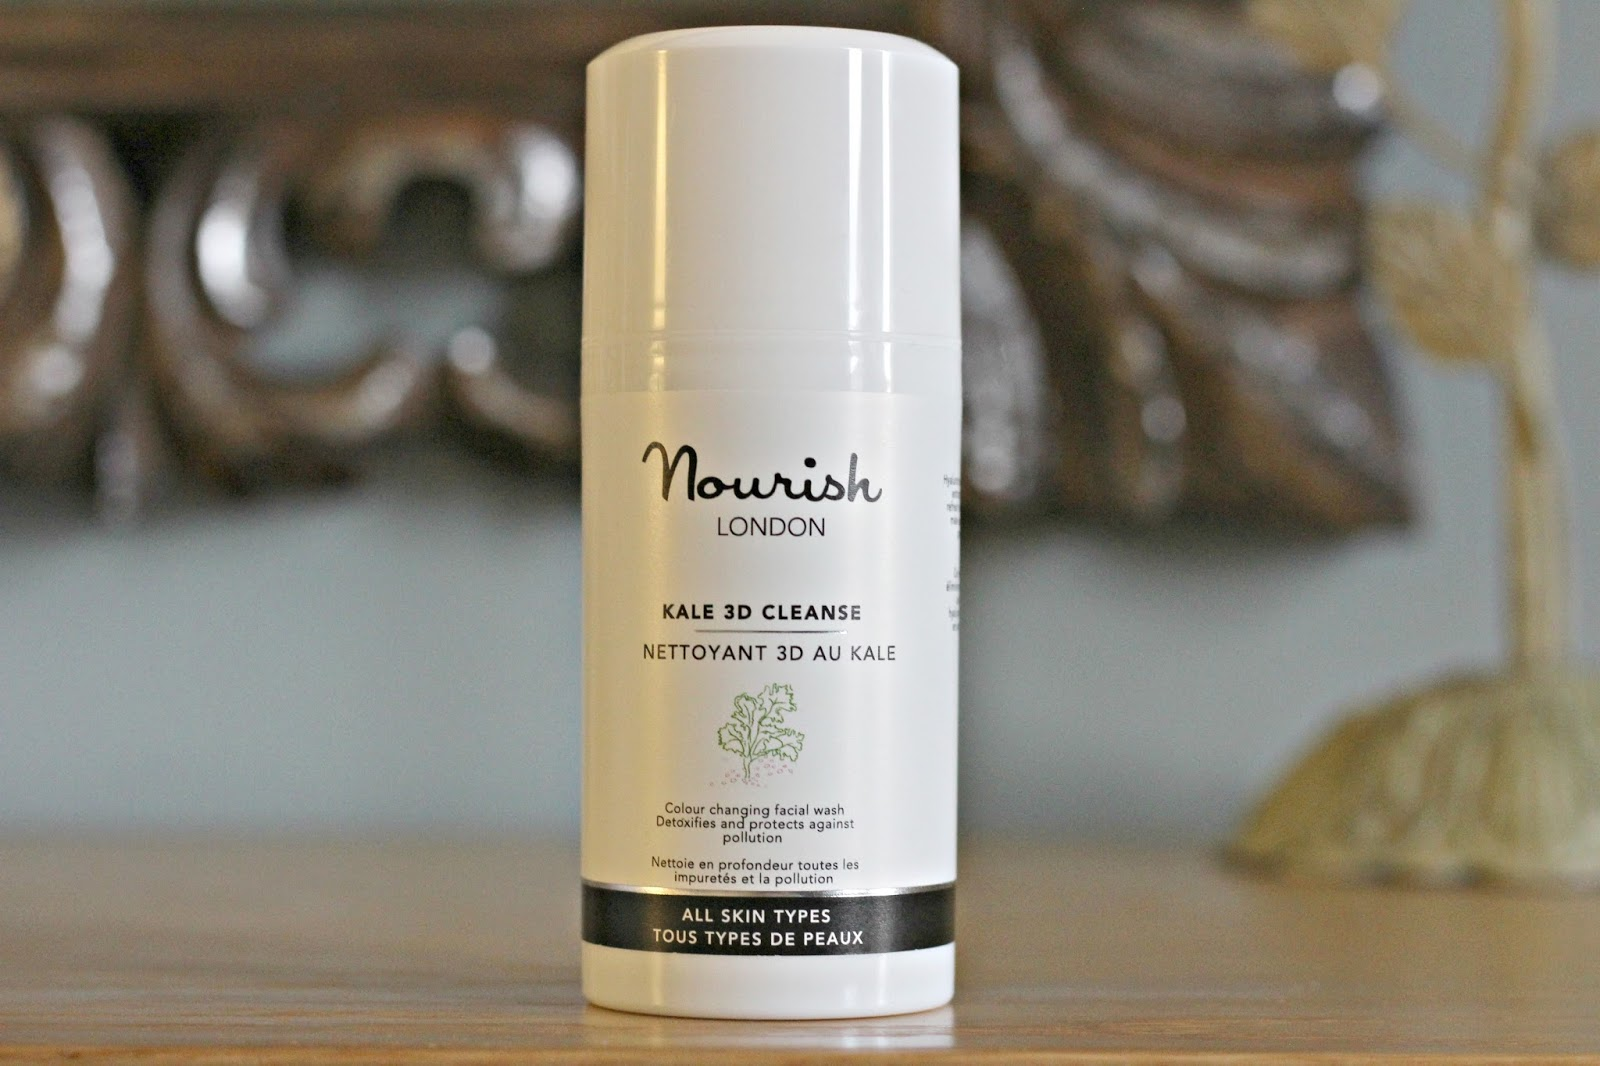 New in: Nourish 3D Cleanse